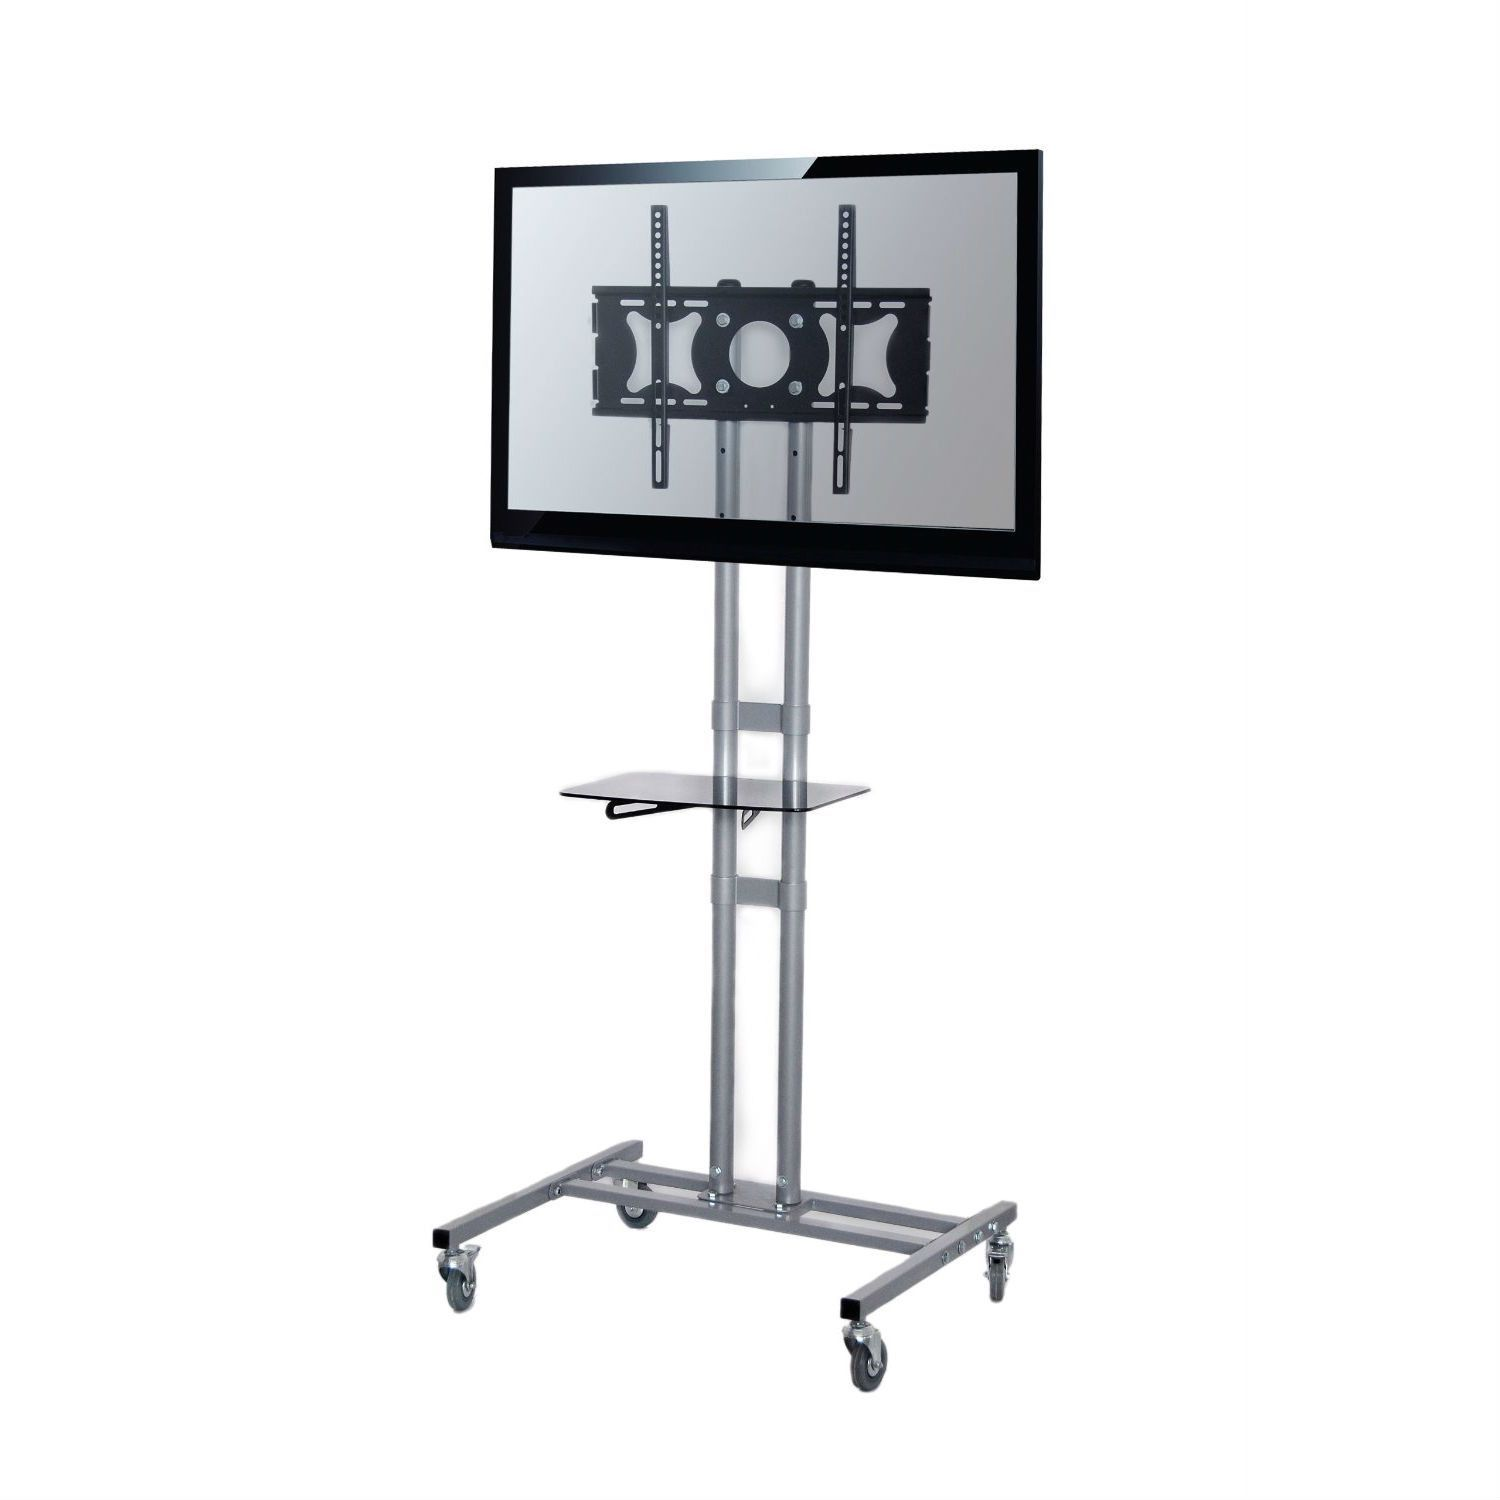 Mobile Tv Stand Modern Adjustable Height Cart For Flat Screen Tvs